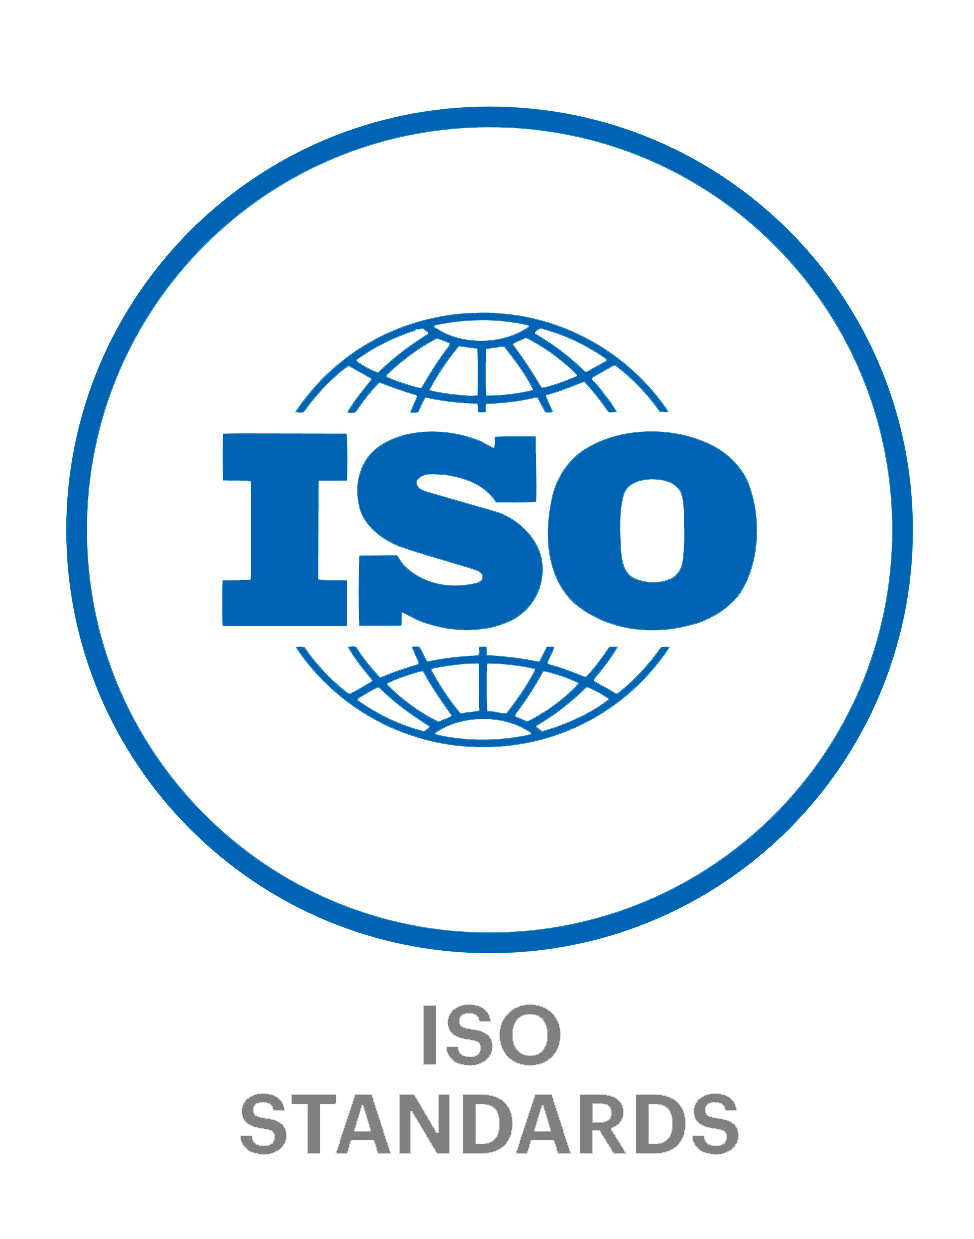 Iso standards